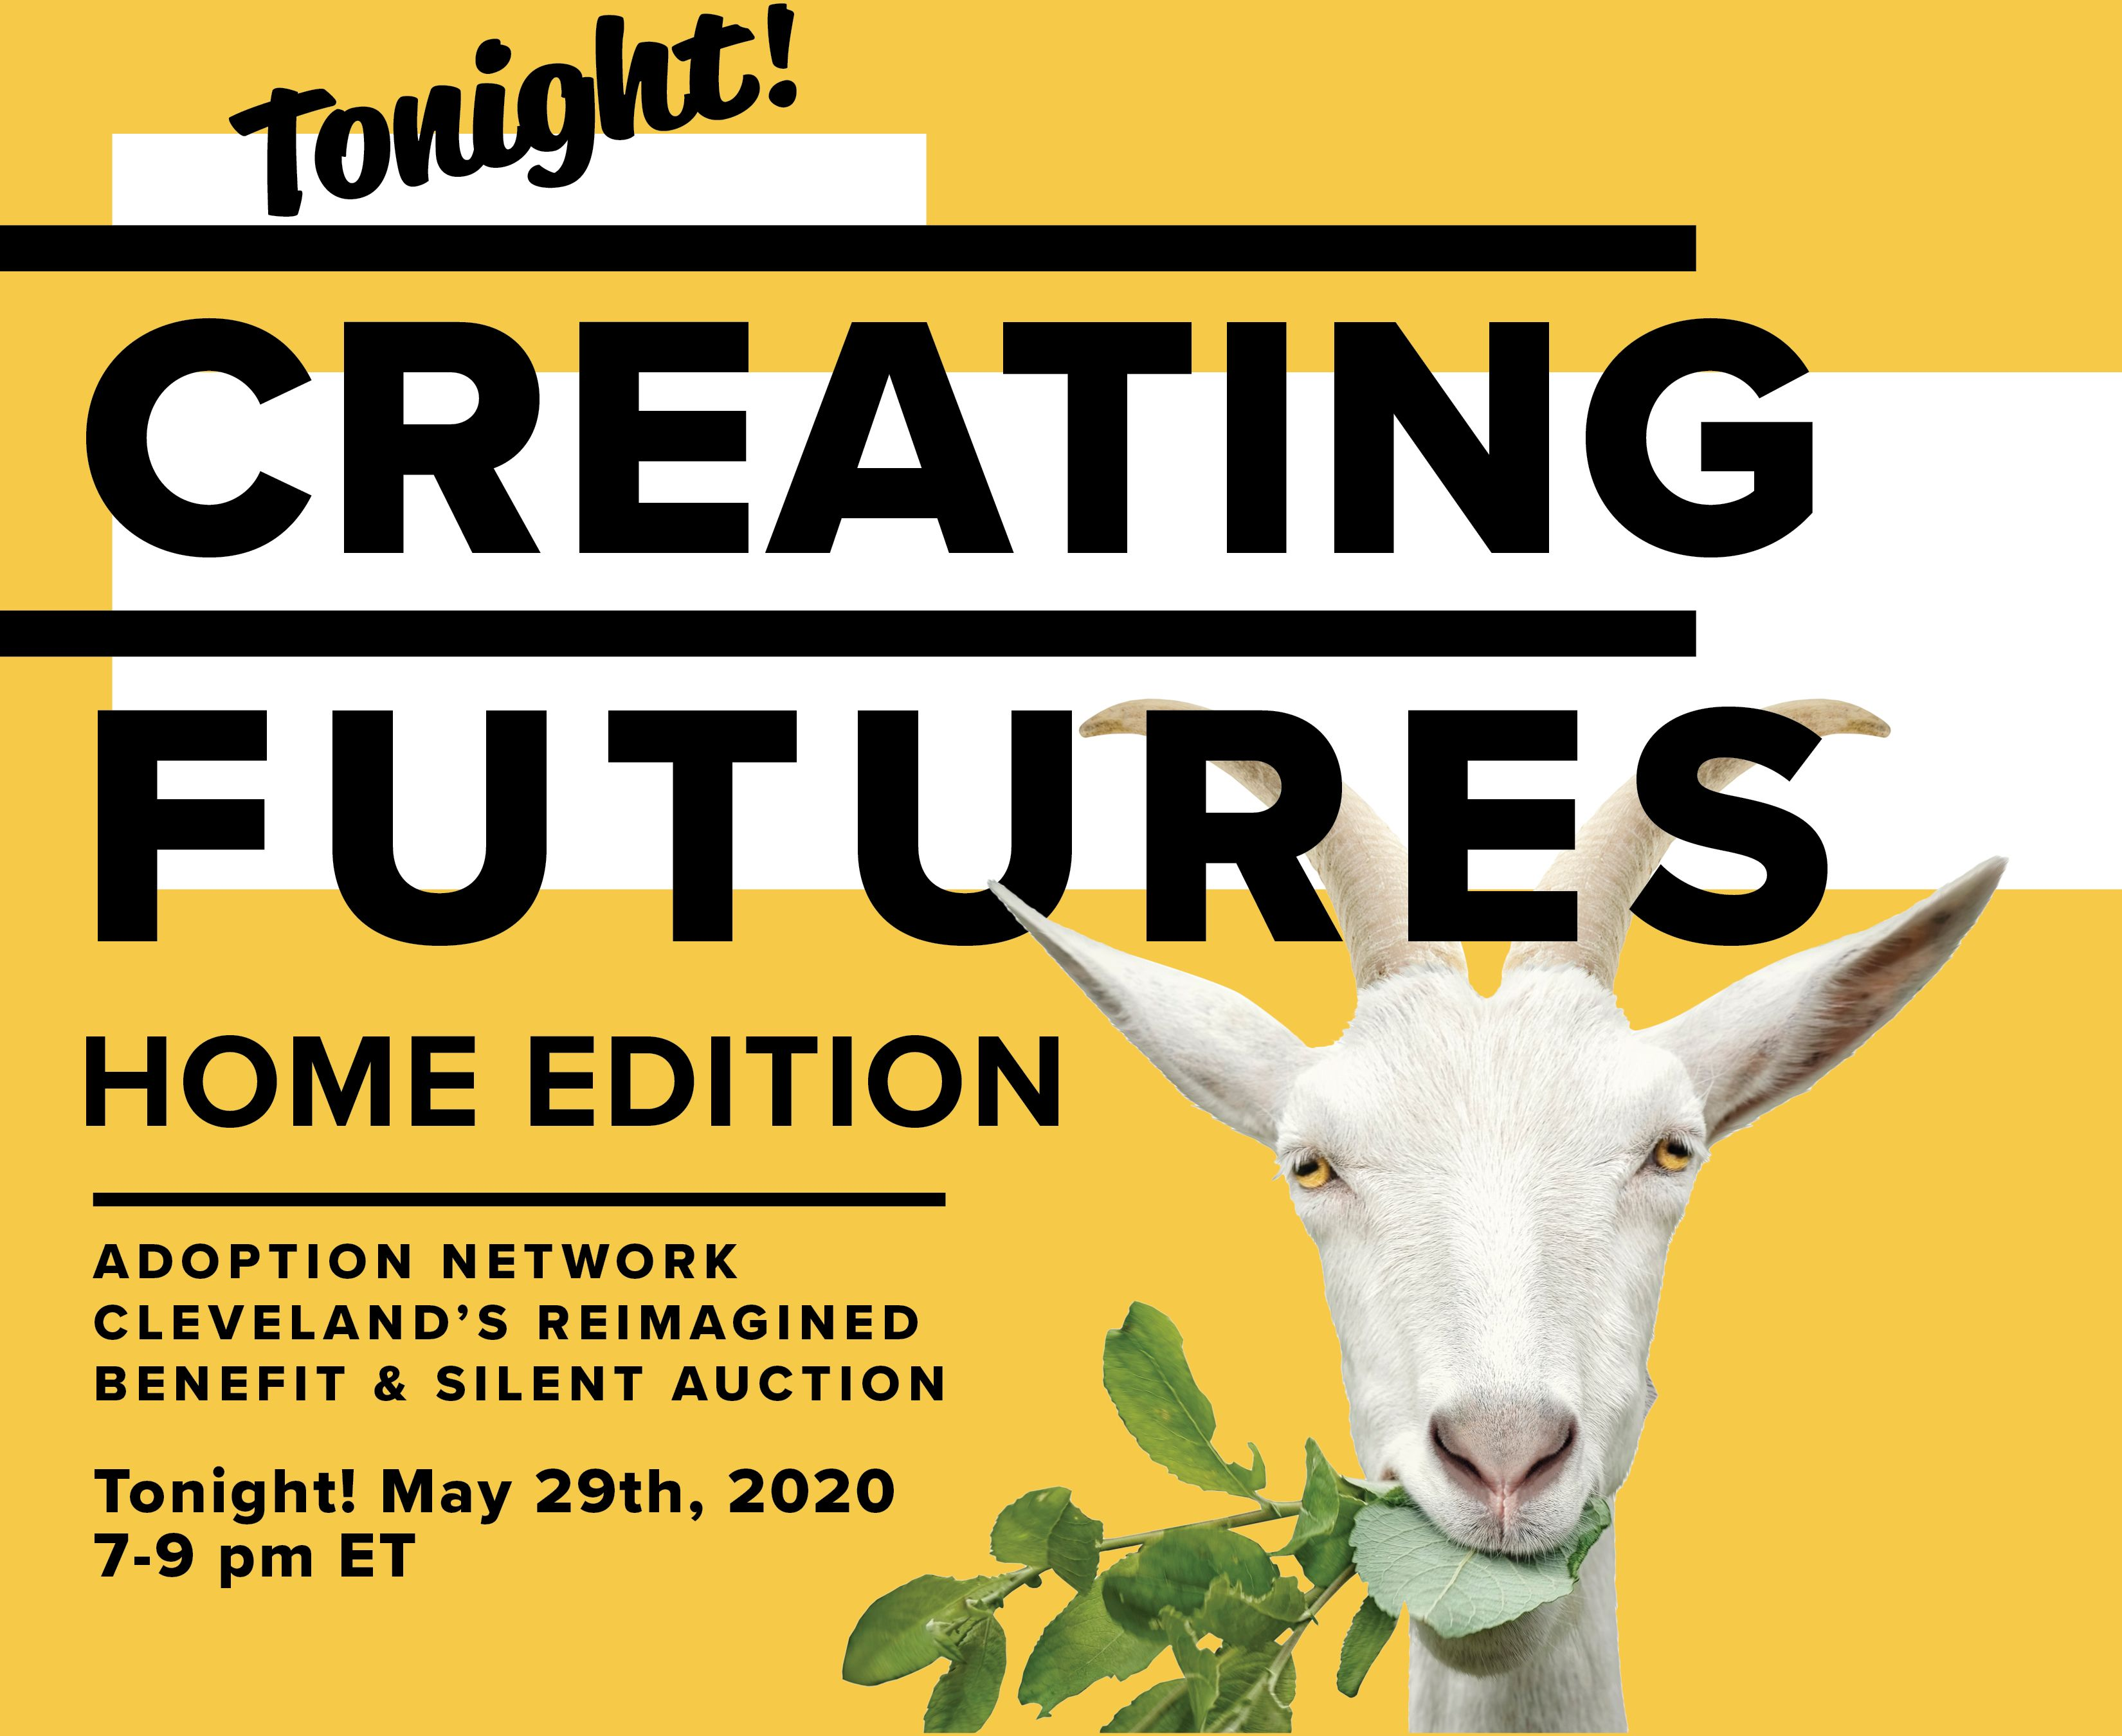 Creating Futures: Home Edition is Tonight!